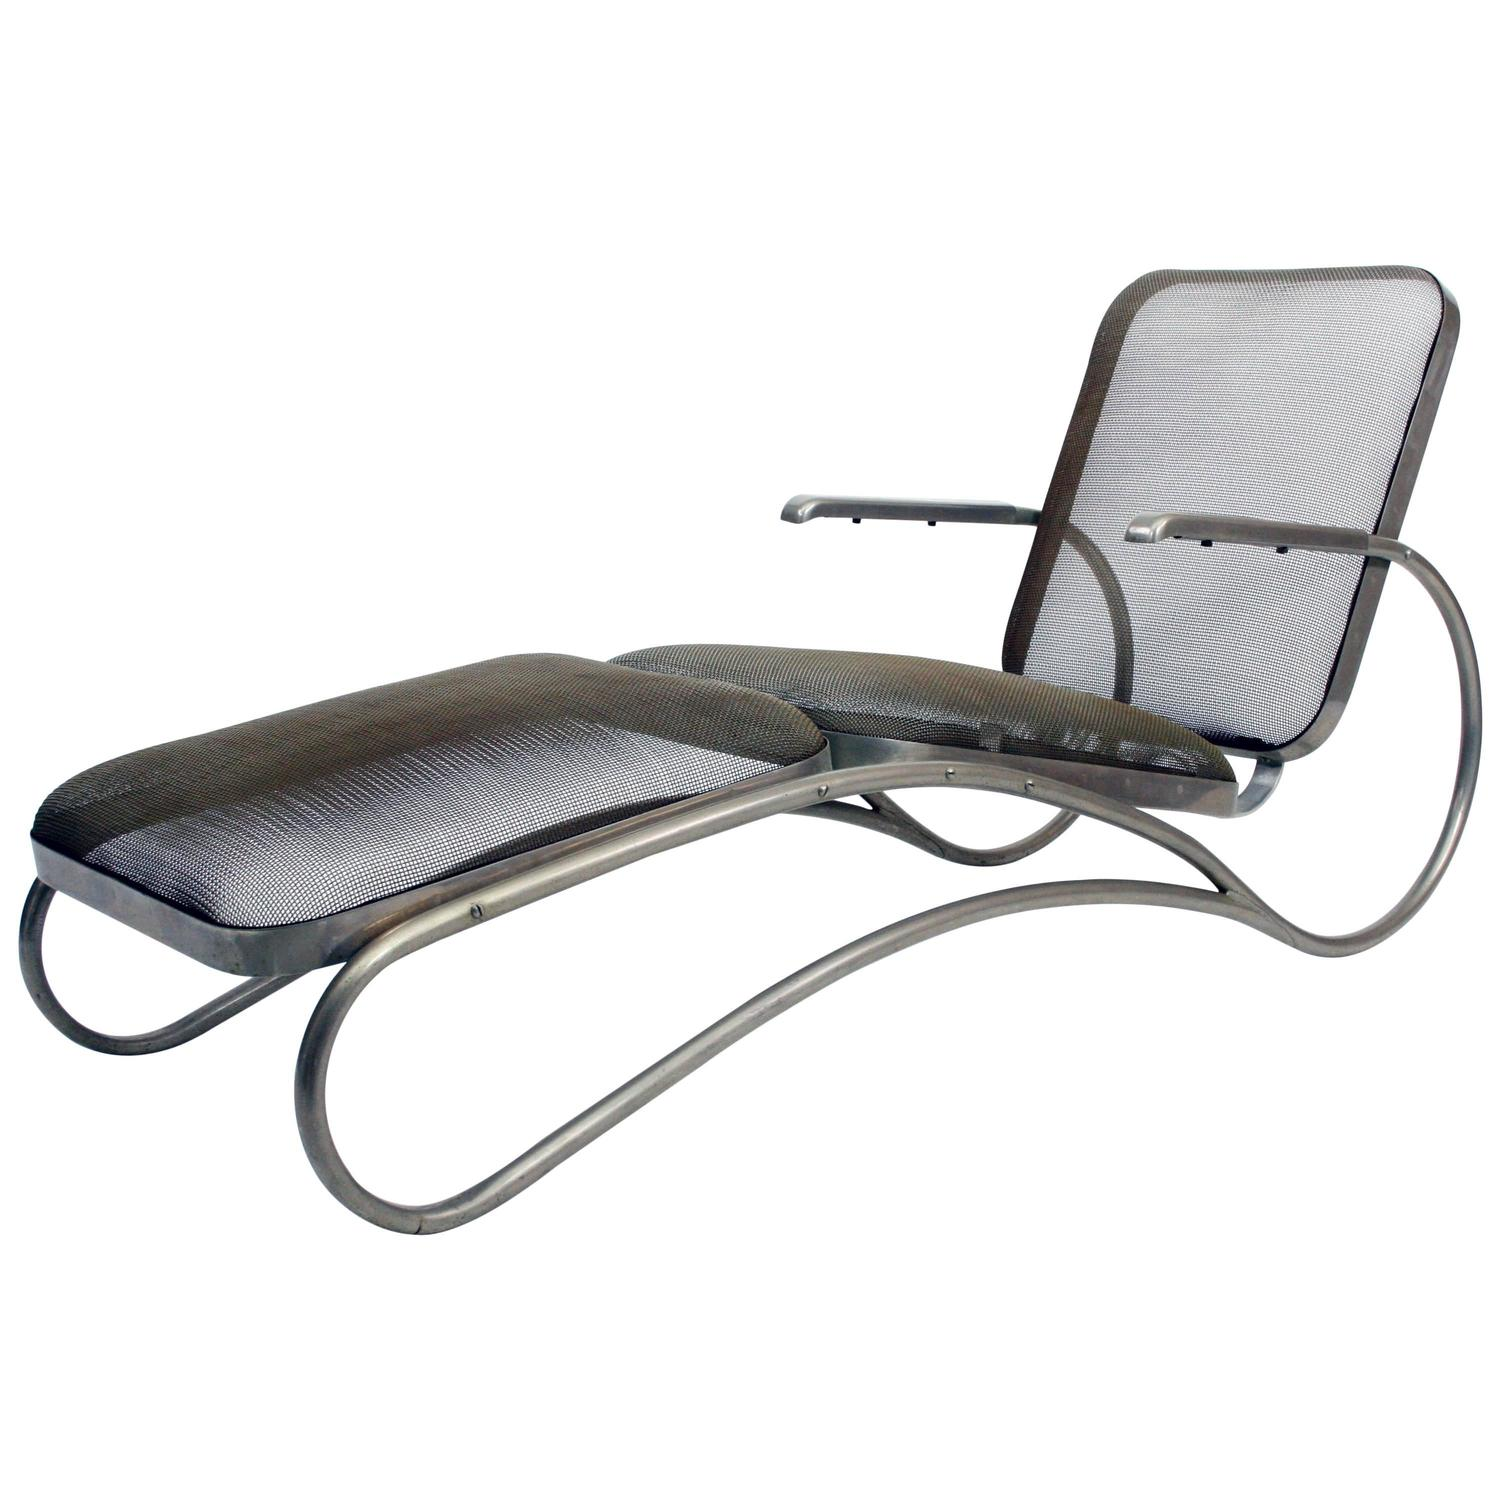 Sculptural 1950s Mesh Outdoor Chaise Lounge at 1stdibs